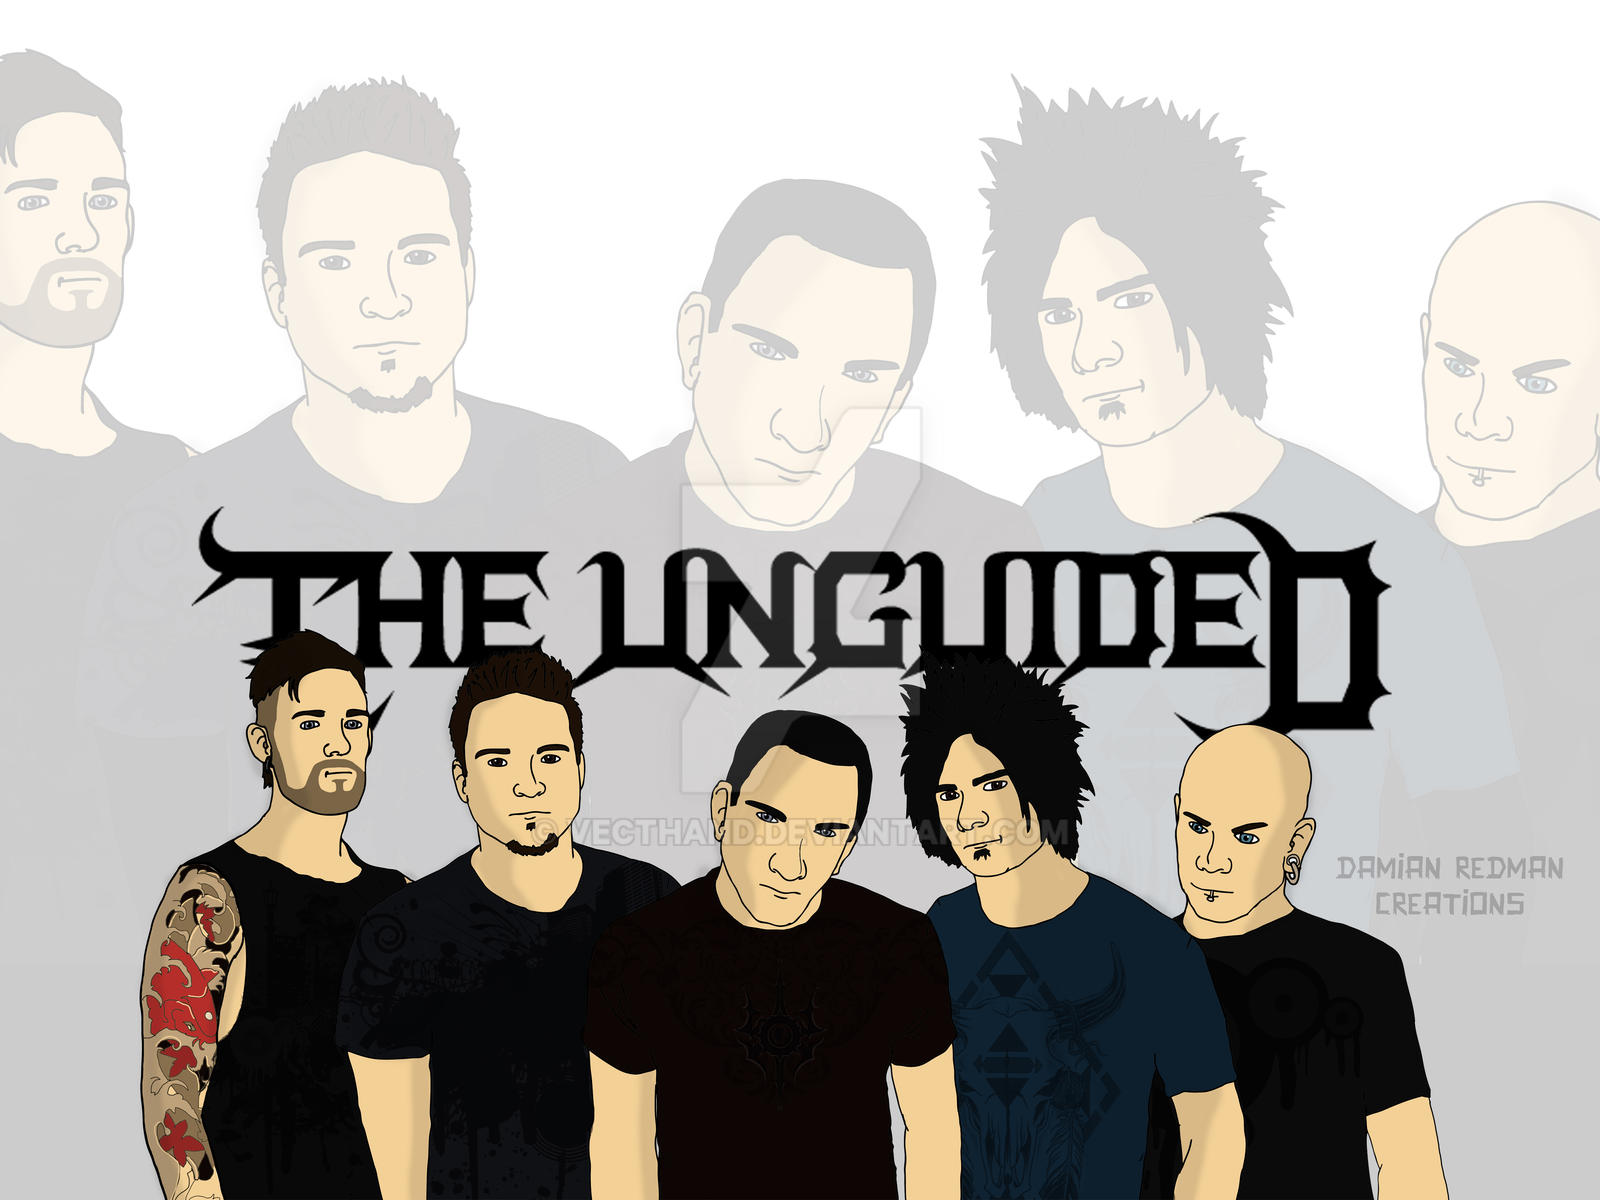 The Unguided - 5 part Invazion by Vecthand